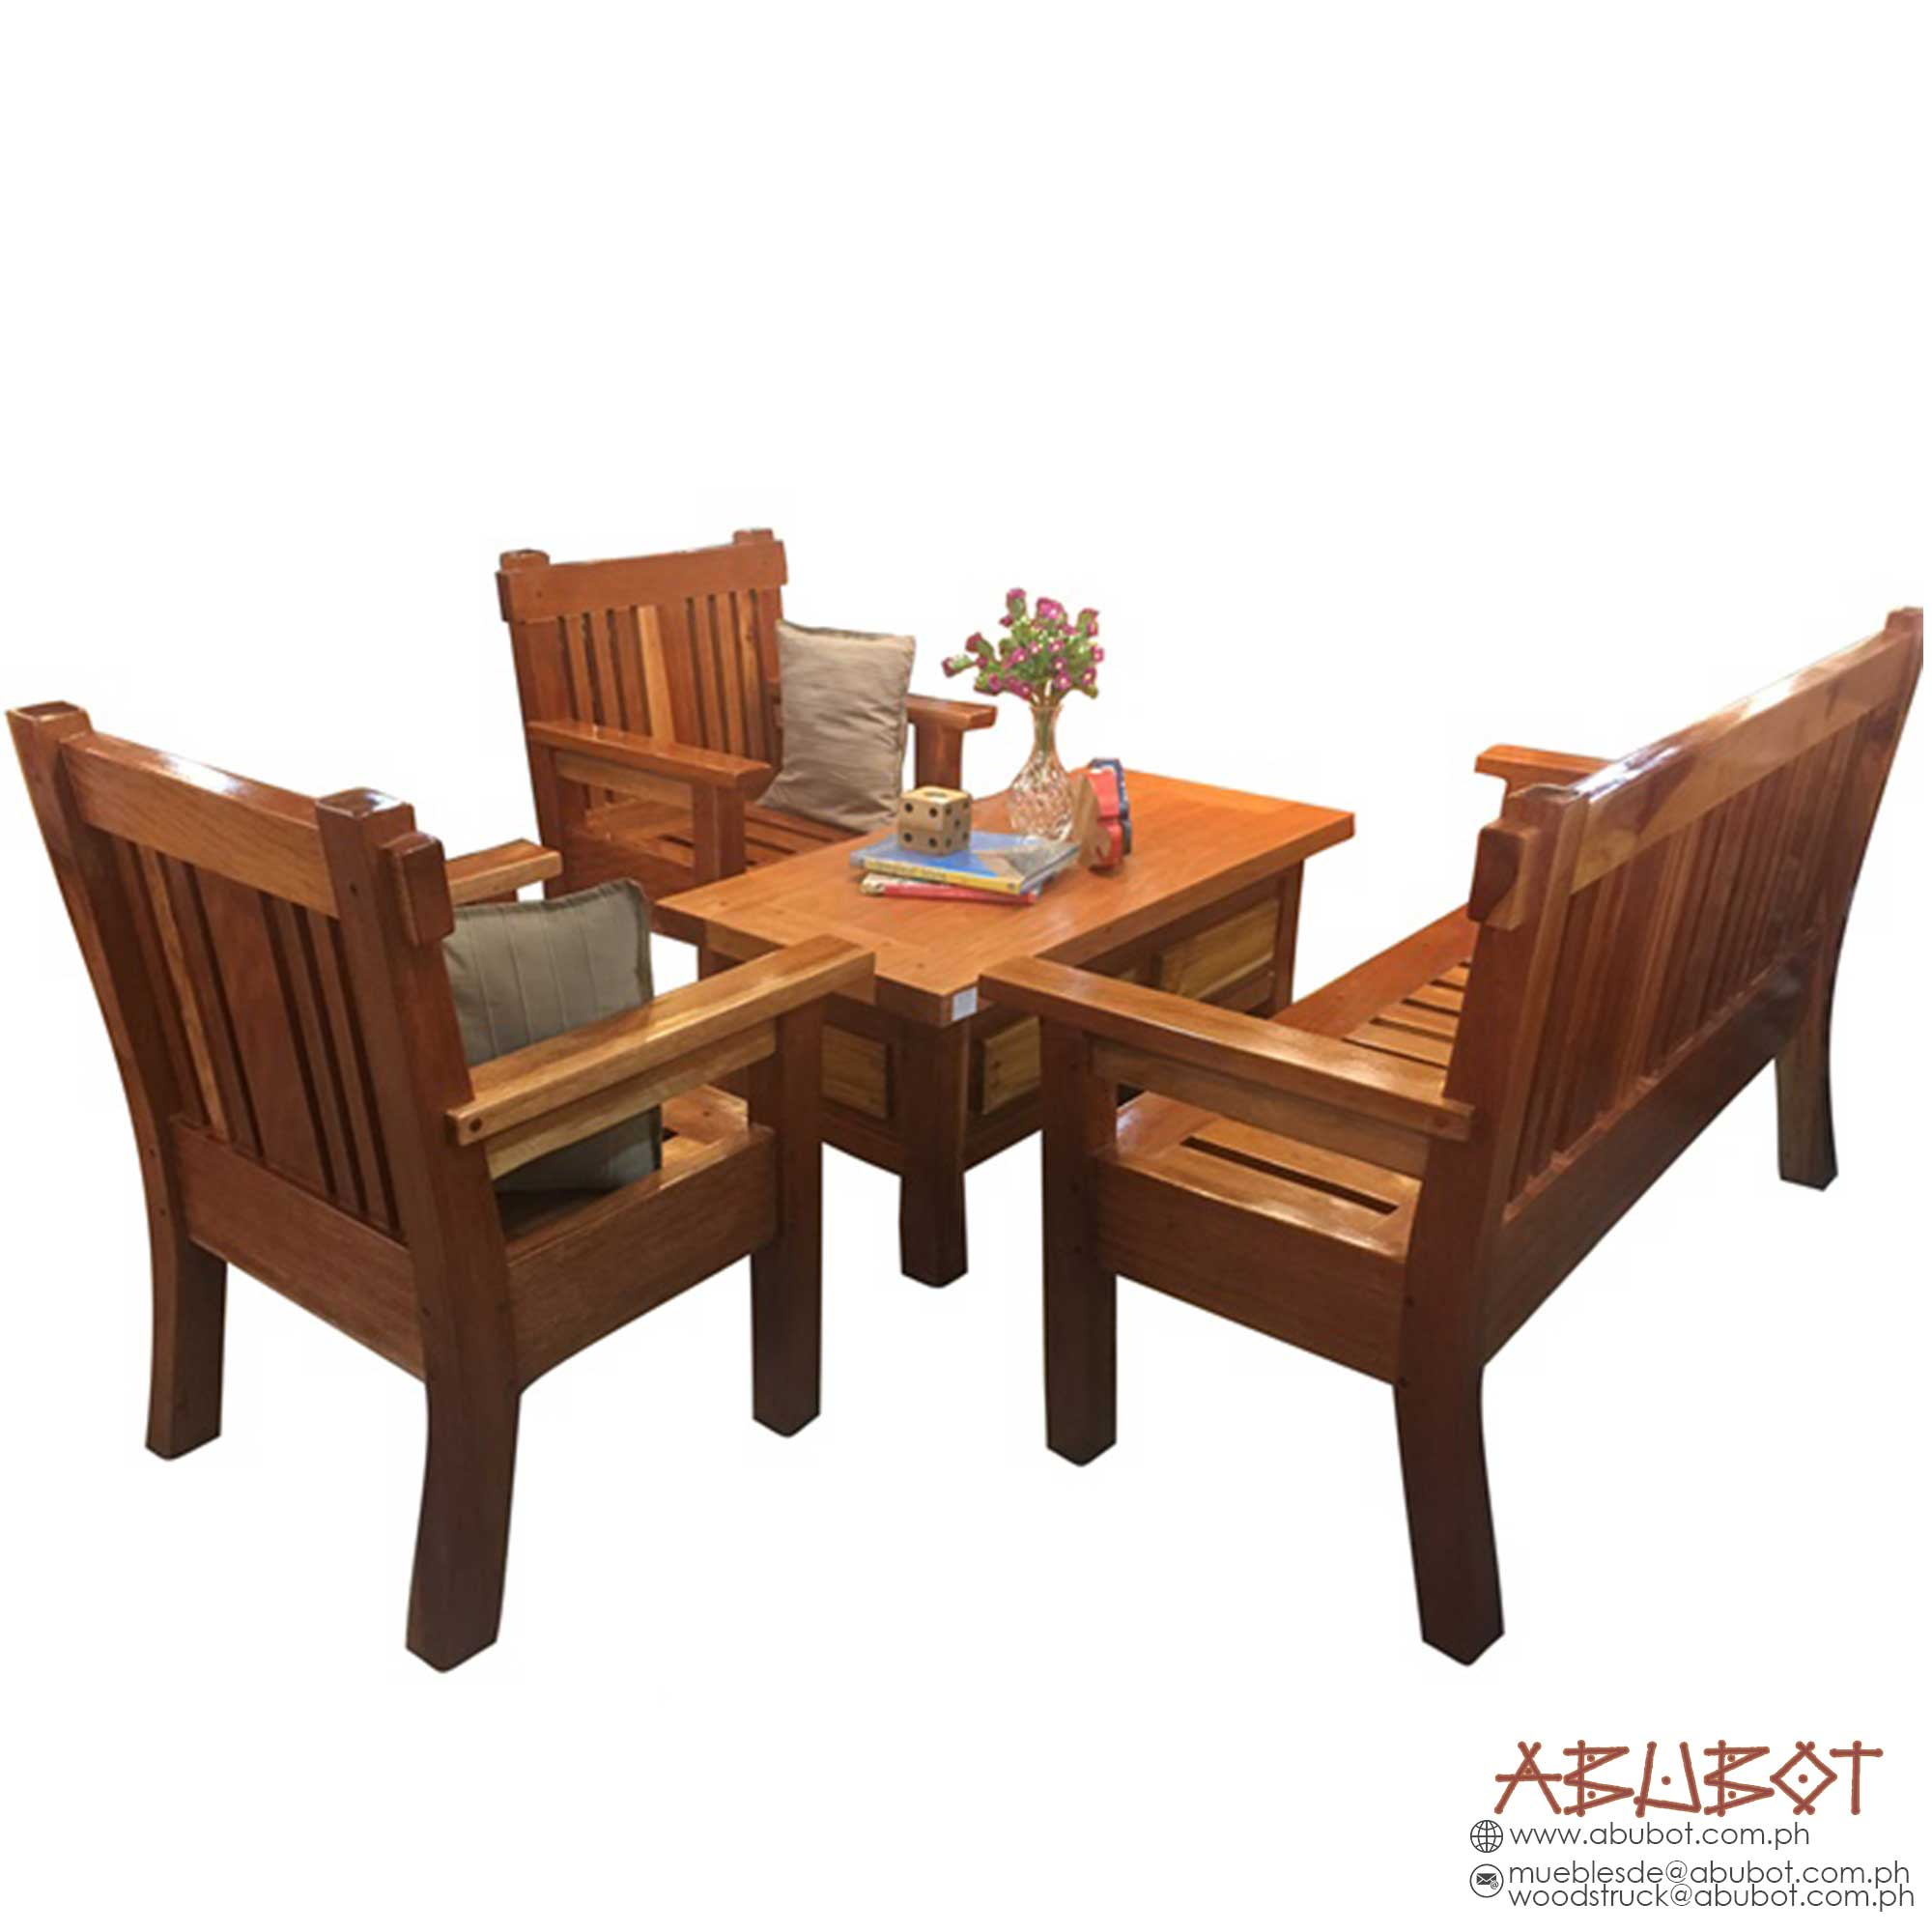 Sala set Slat w/ Big Center Table